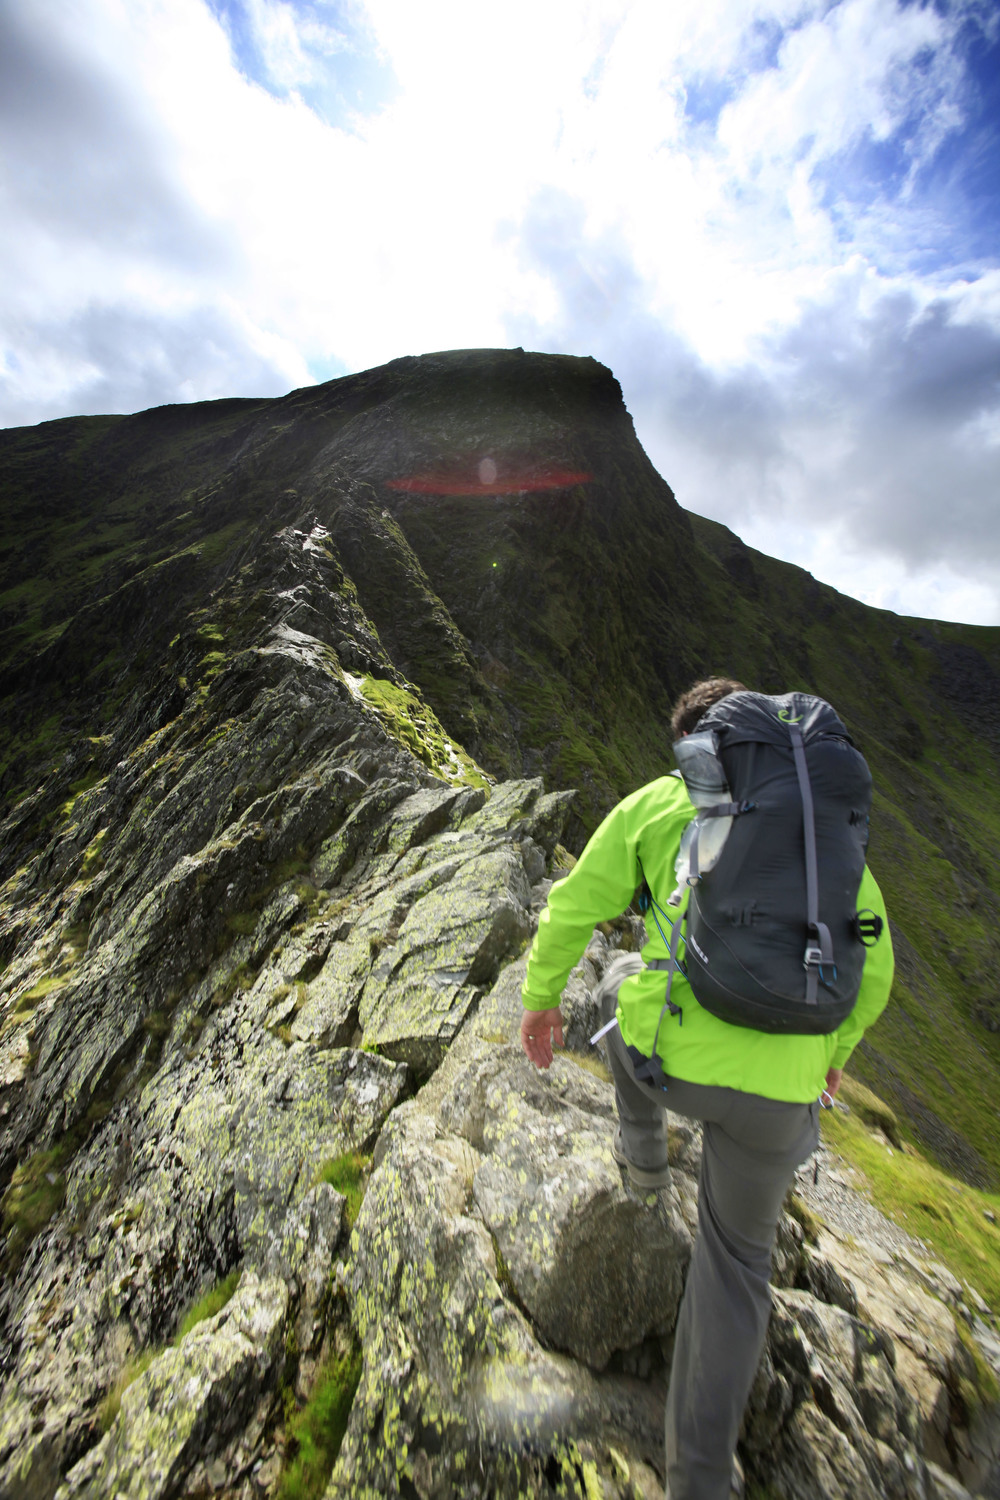 On Sharp Edge, 20 litre backpack full of camping gear. Photo: Tom Bailey © Trail Magazine